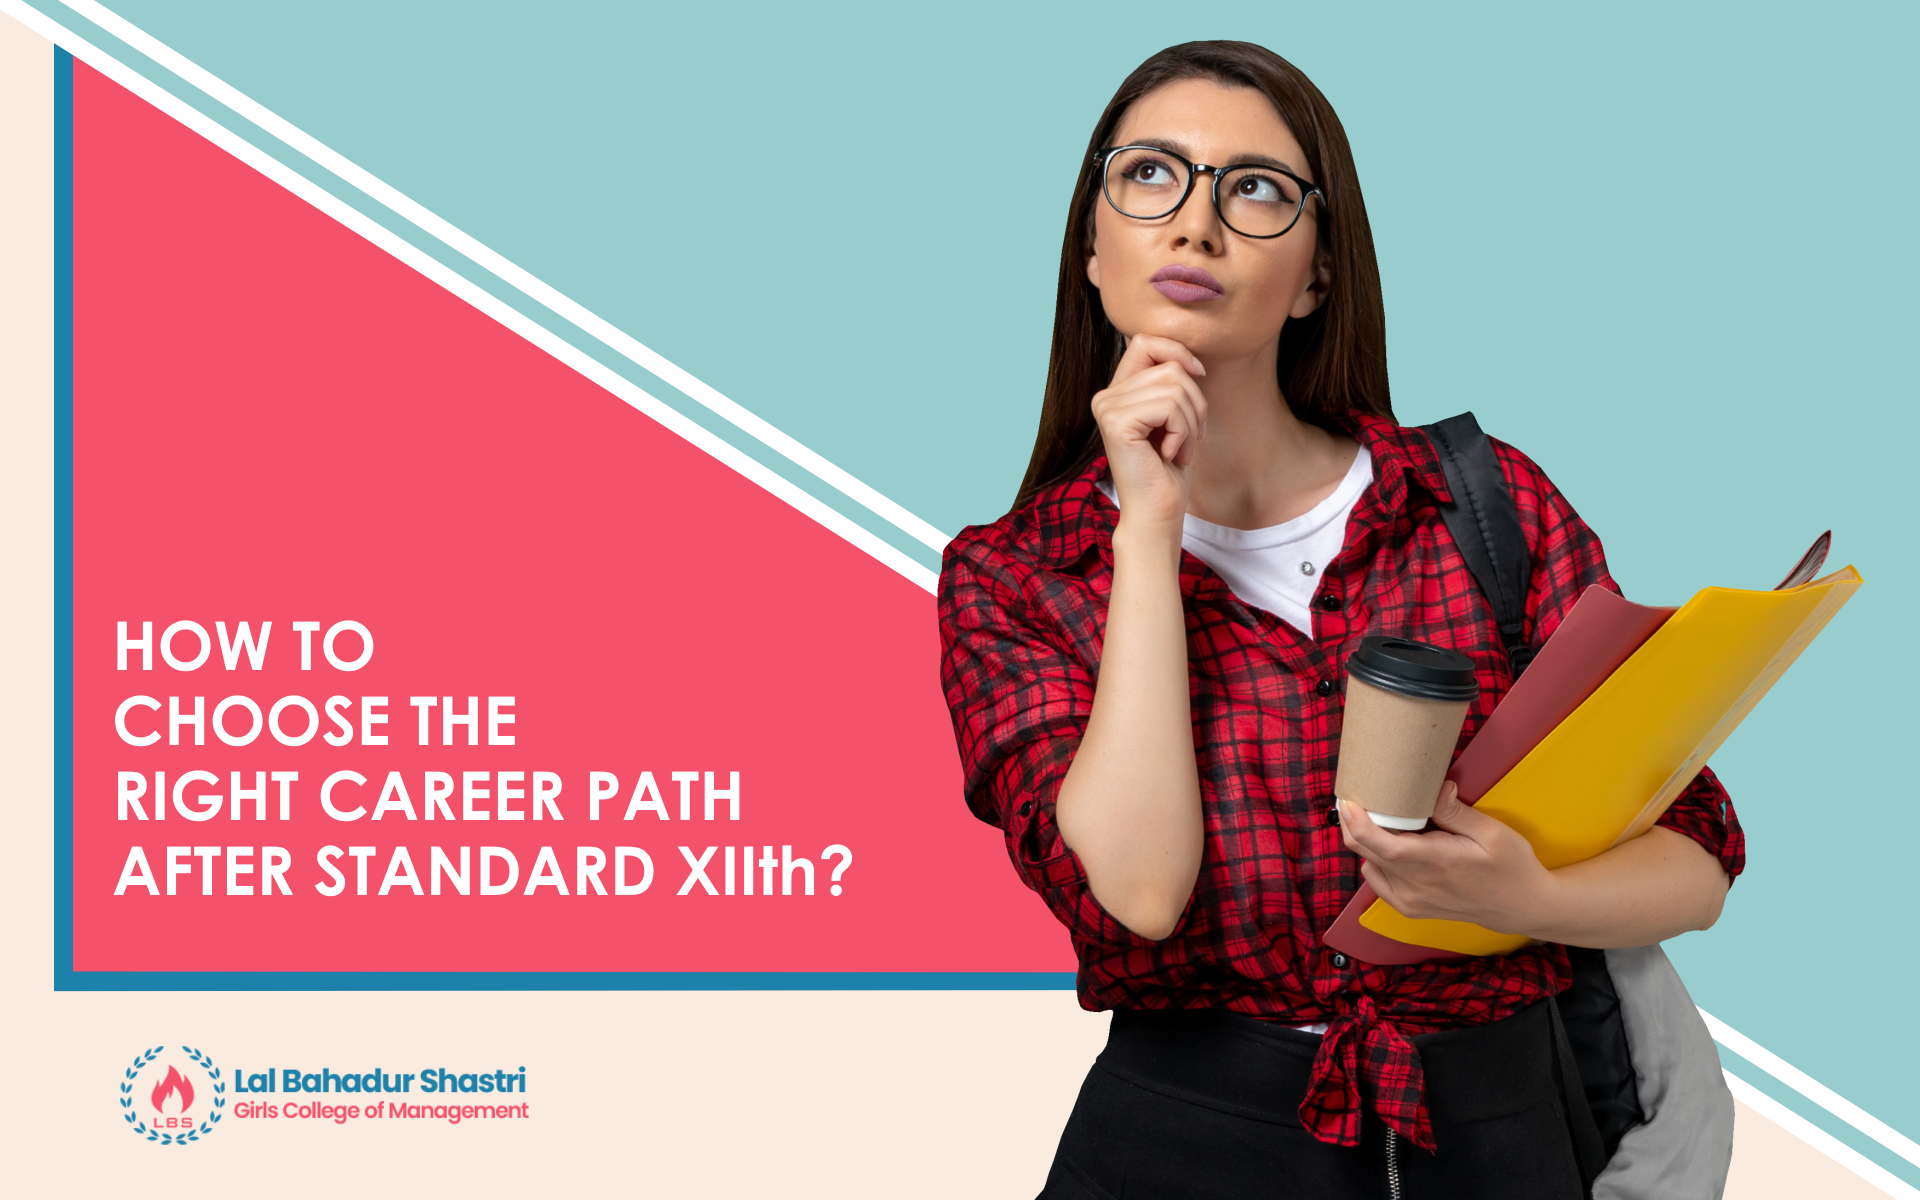 How To Choose The Right Career Path After Standard XIIth?